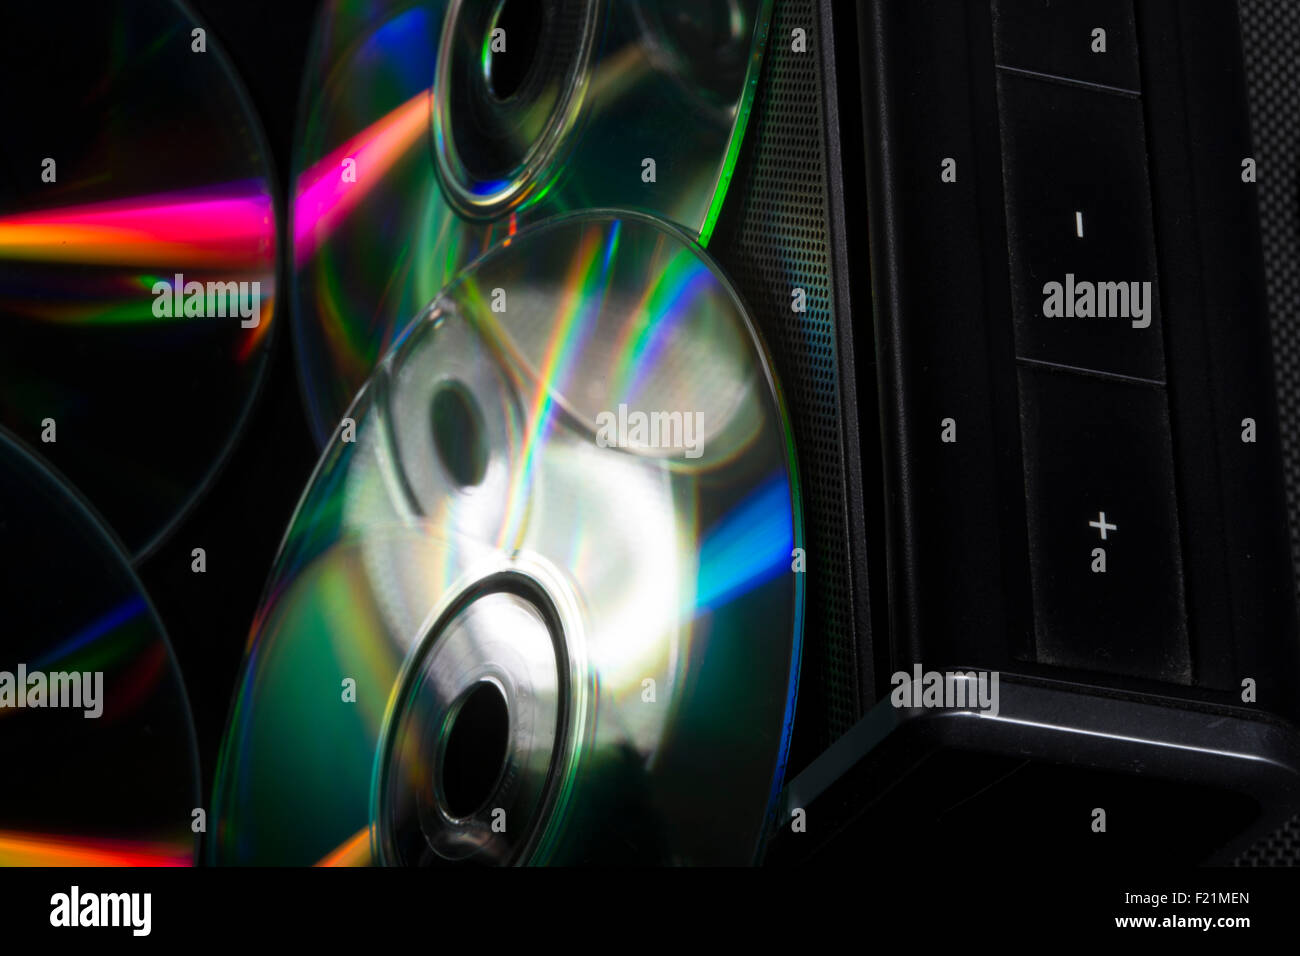 compact disc and music box - Stock Image